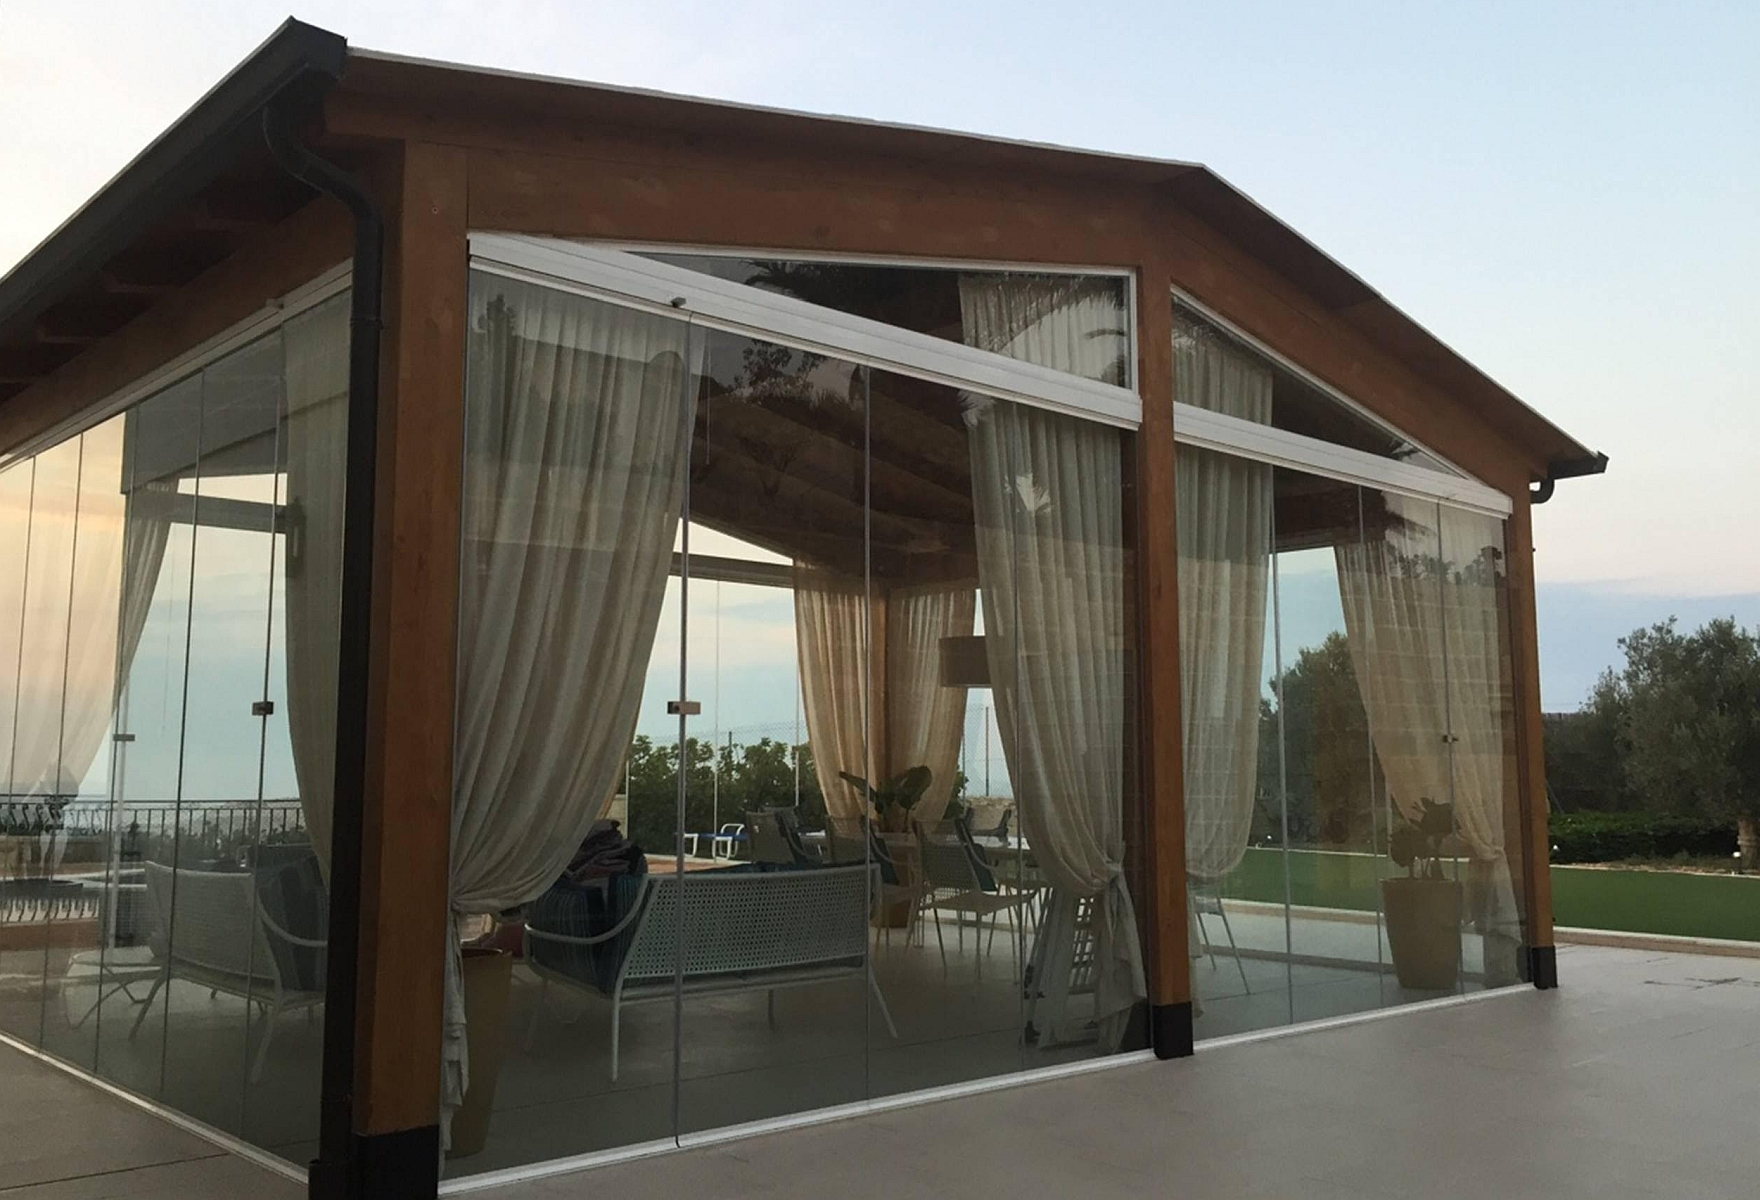 Getting Ready For Summertime With An Enclosed Gazebo